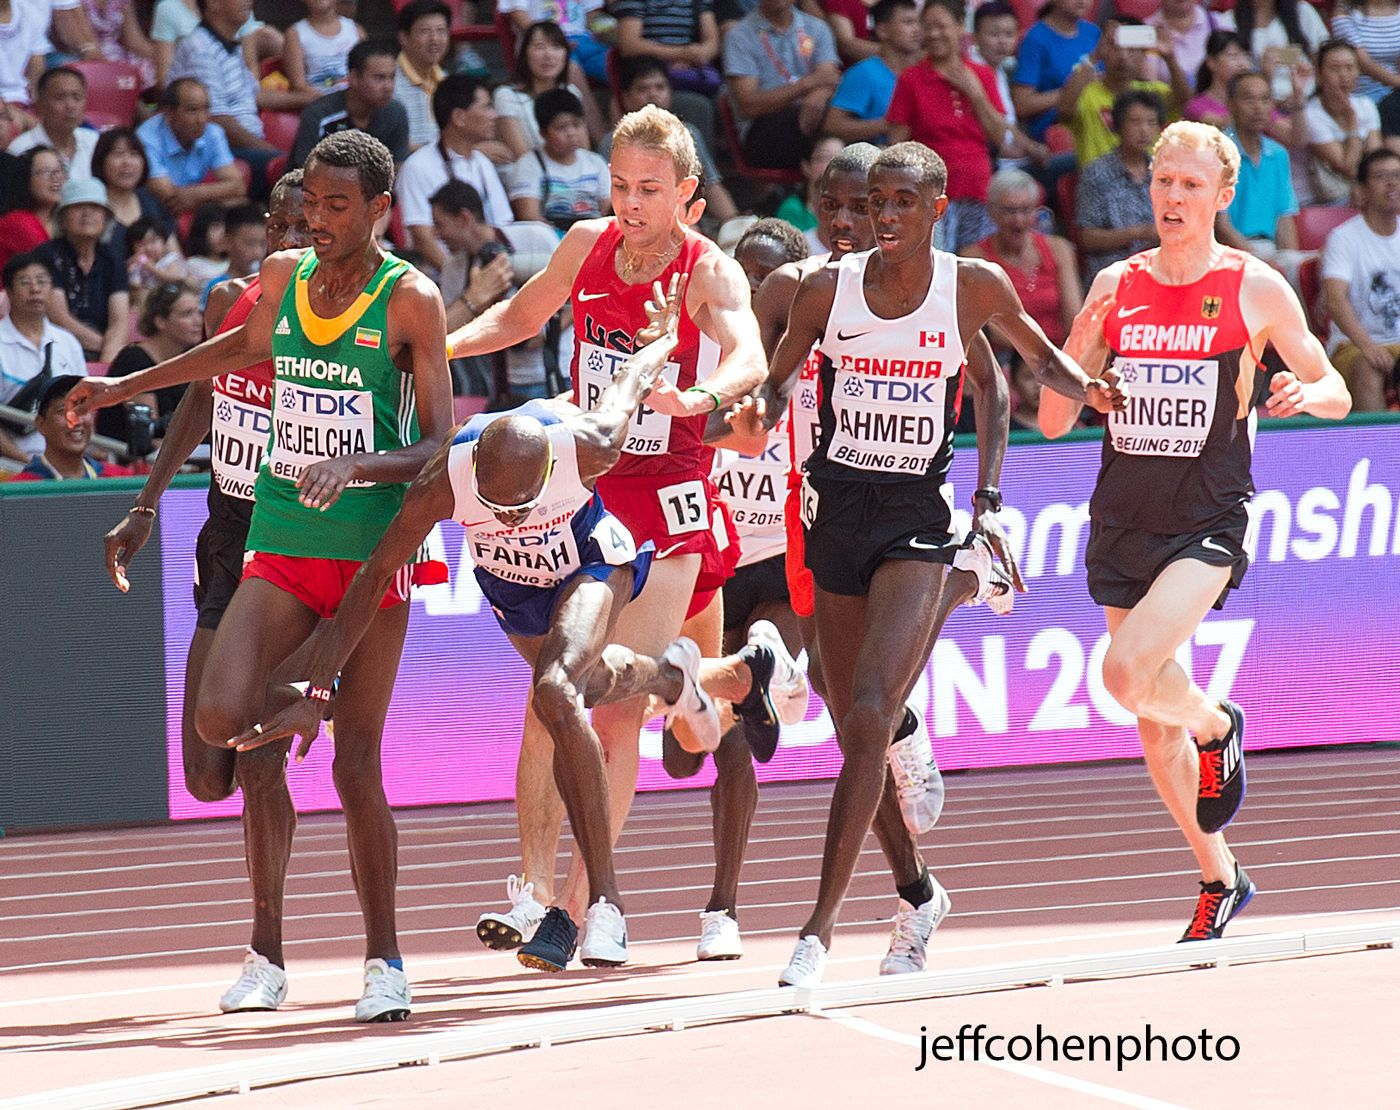 1beijing2015_day_5_mo_farah_clipped_5k_heat_jeff_cohen_photo_17406_web.jpg